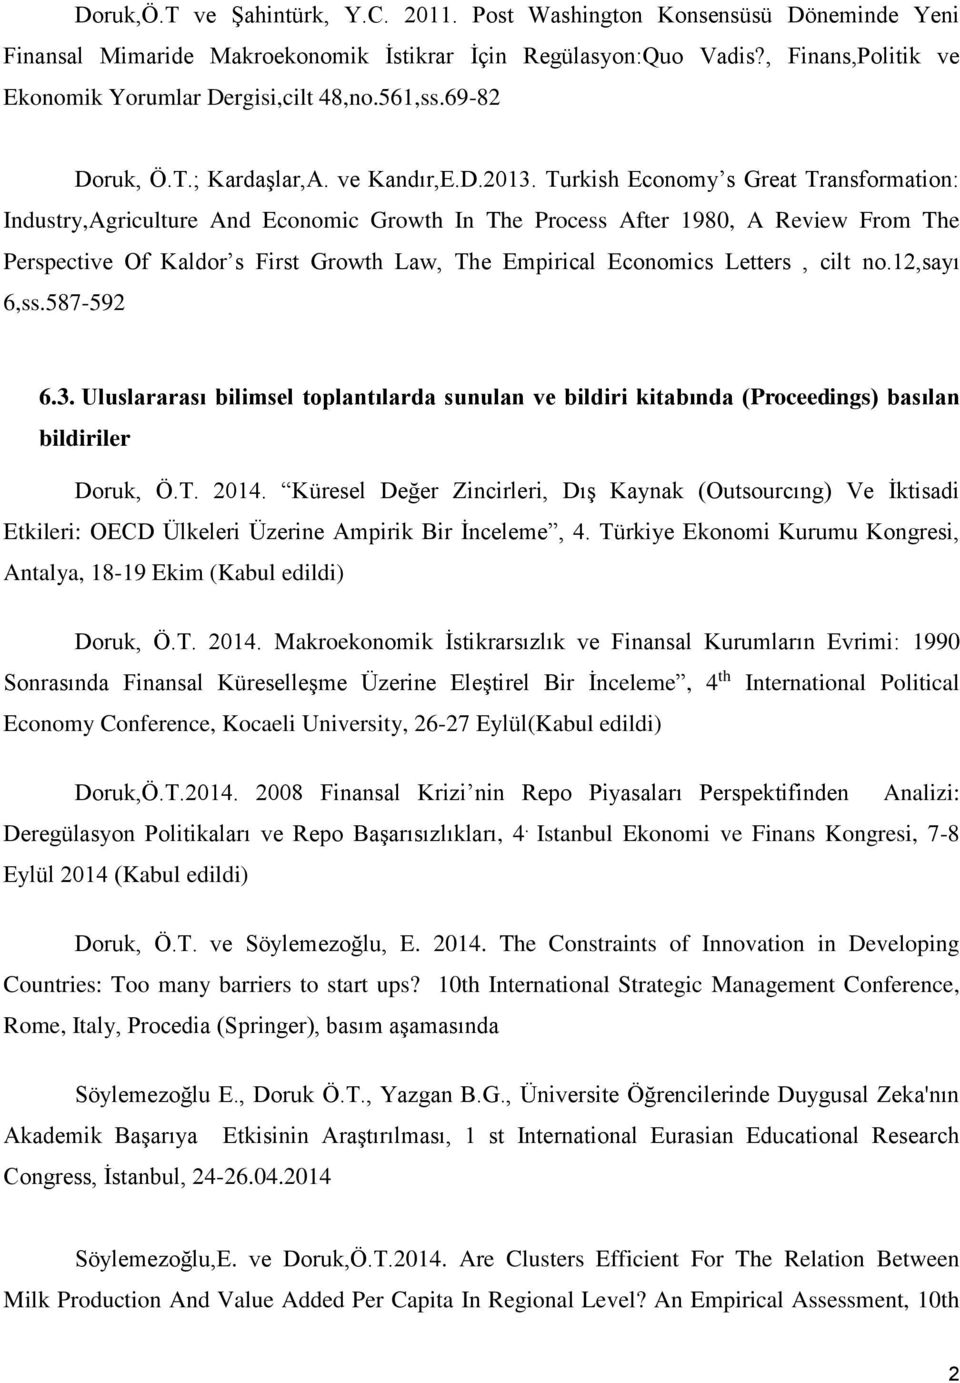 Turkish Economy s Great Transformation: Industry,Agriculture And Economic Growth In The Process After 1980, A Review From The Perspective Of Kaldor s First Growth Law, The Empirical Economics